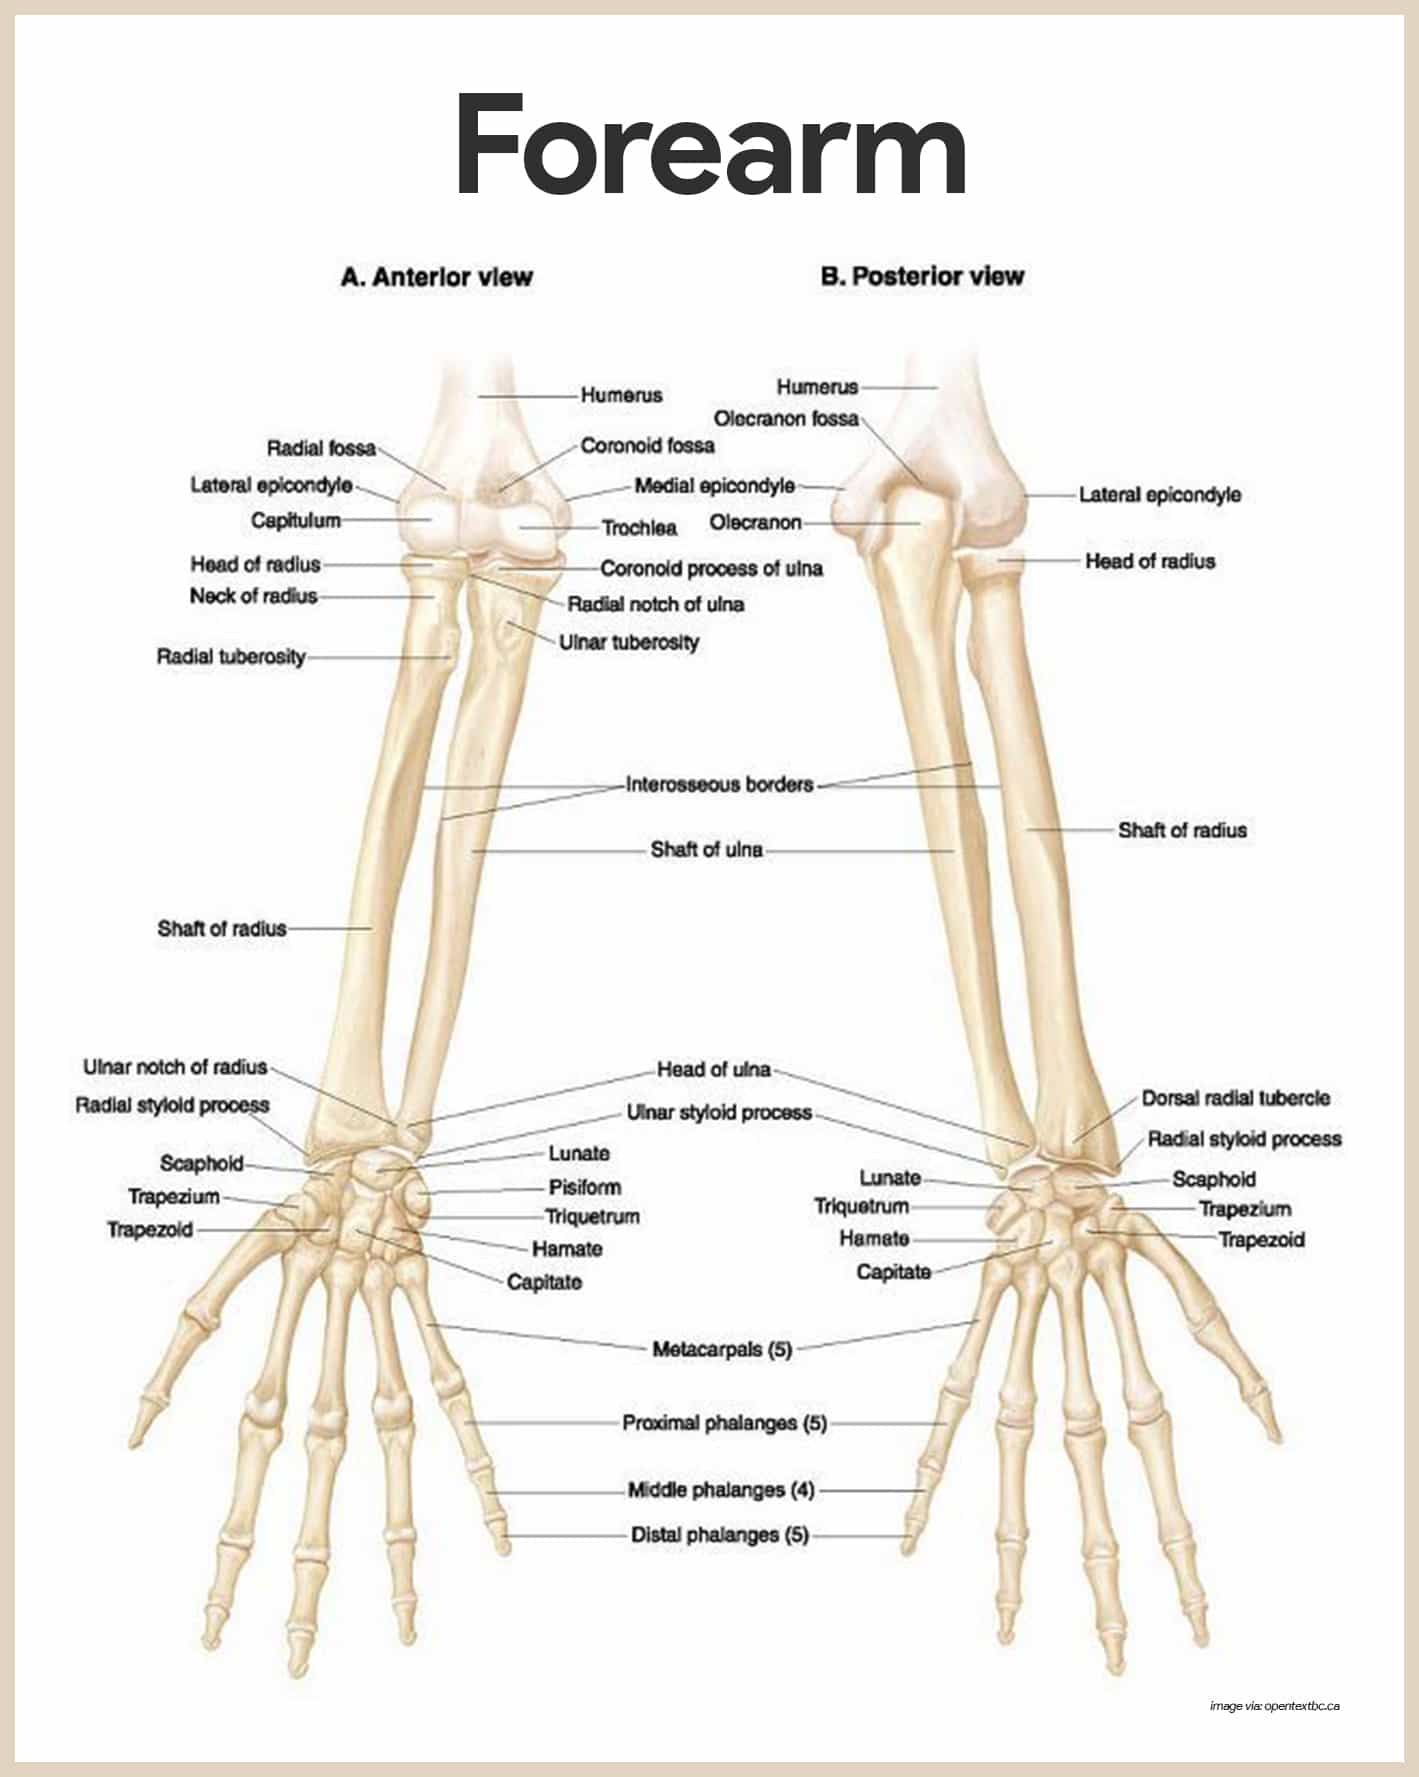 Forearm Anatomy-Skeletal System Anatomy and Physiology for Nurses